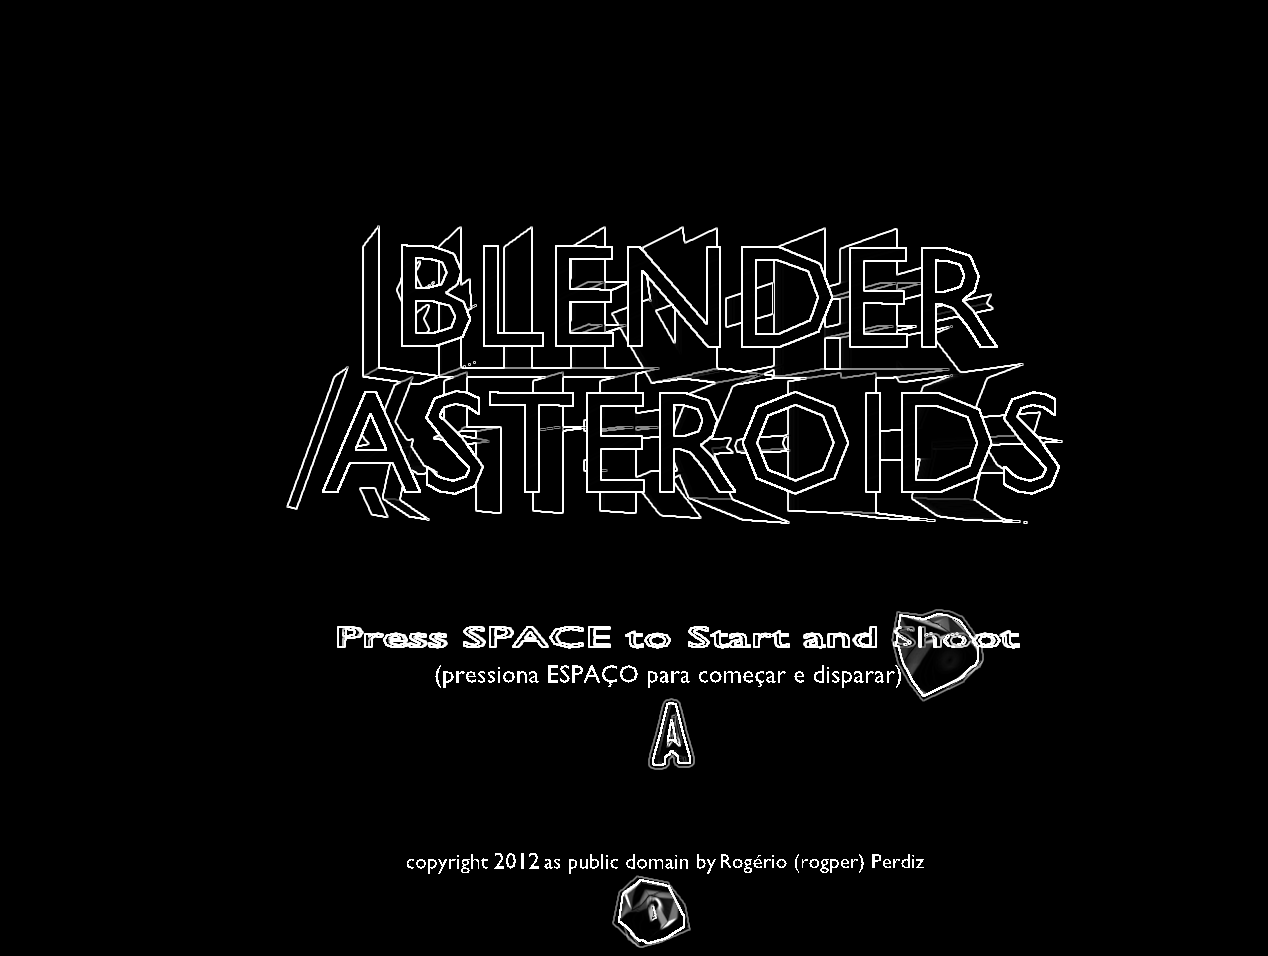 blender-asteroids.png